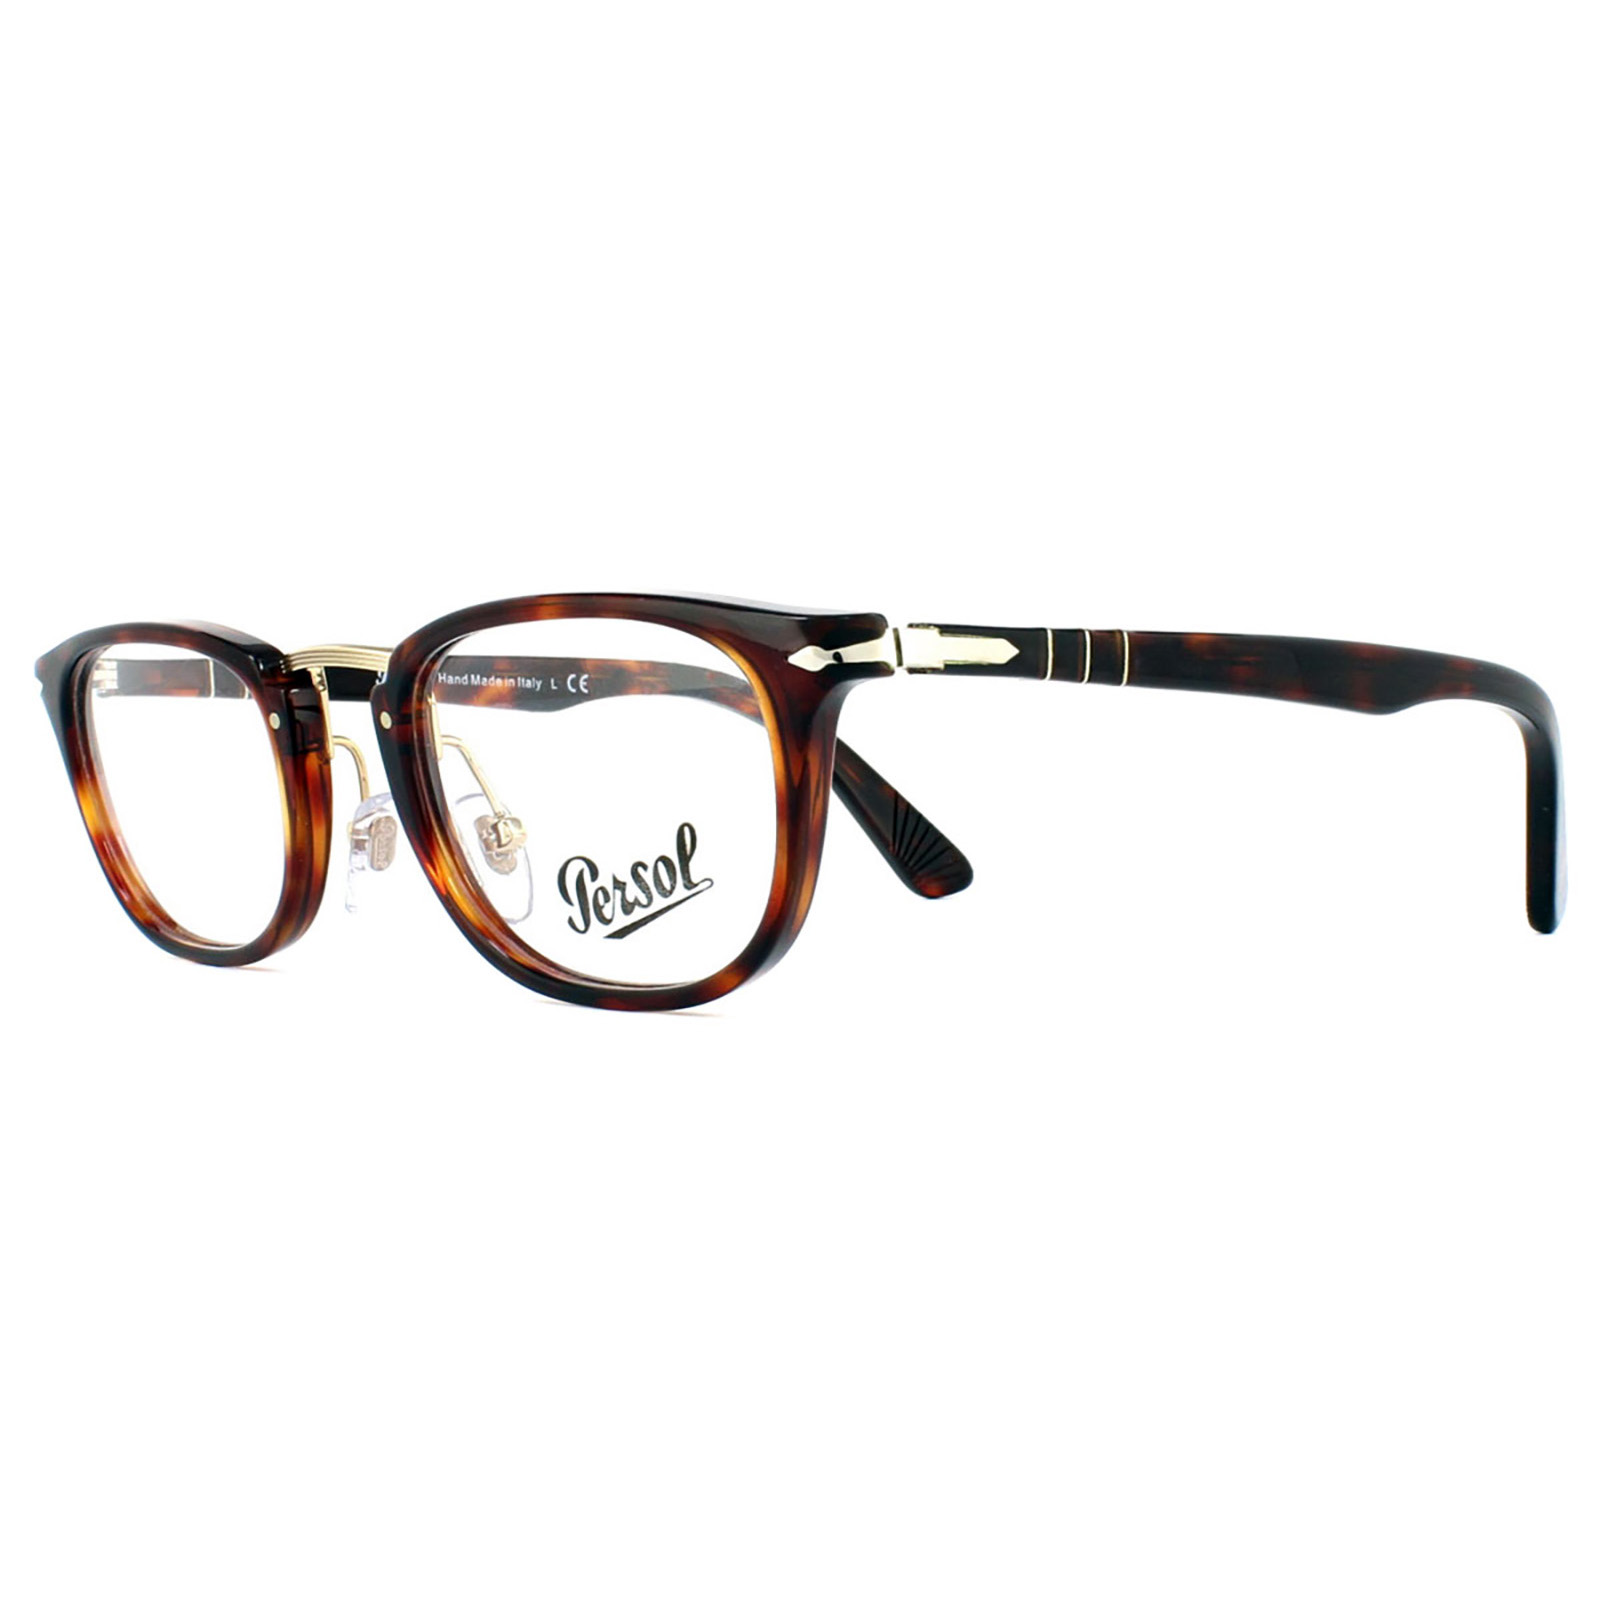 7a850c38fda Sentinel Persol Glasses Frames 3126V 24 Havana Men 48mm